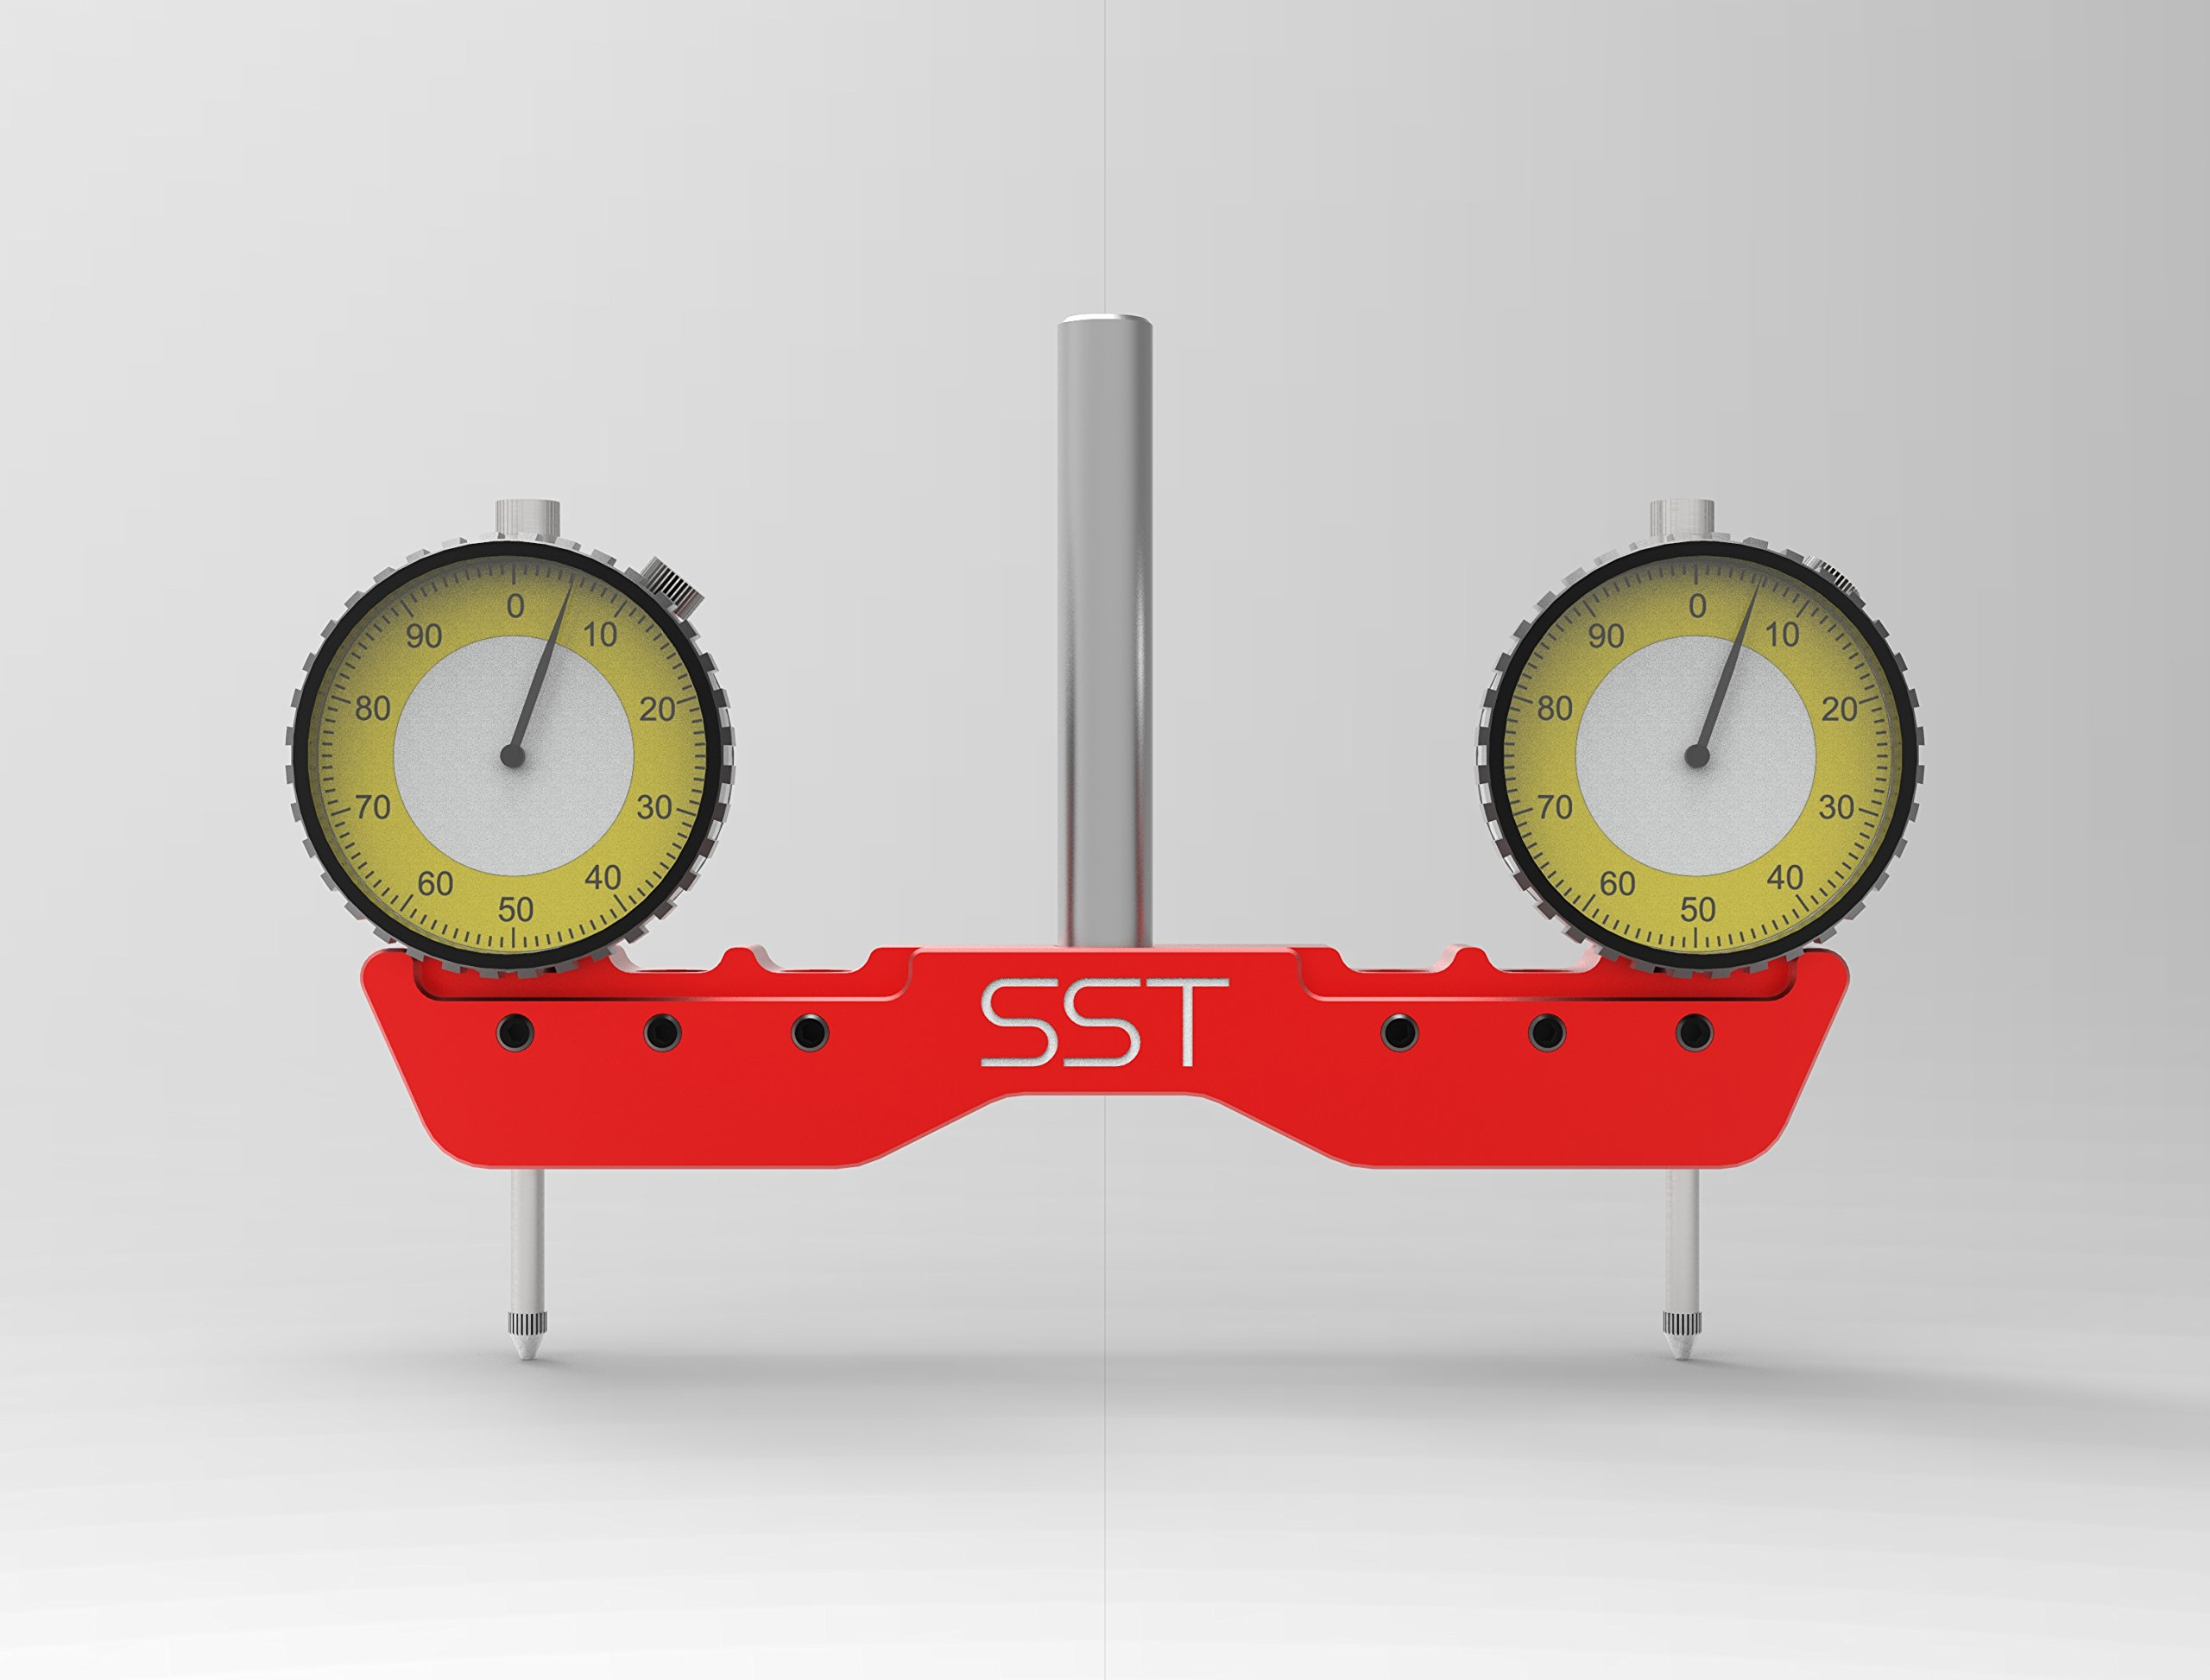 SST Mill & Lathe Adjustable Tramming - Squaring System by Stupid Simple Tools